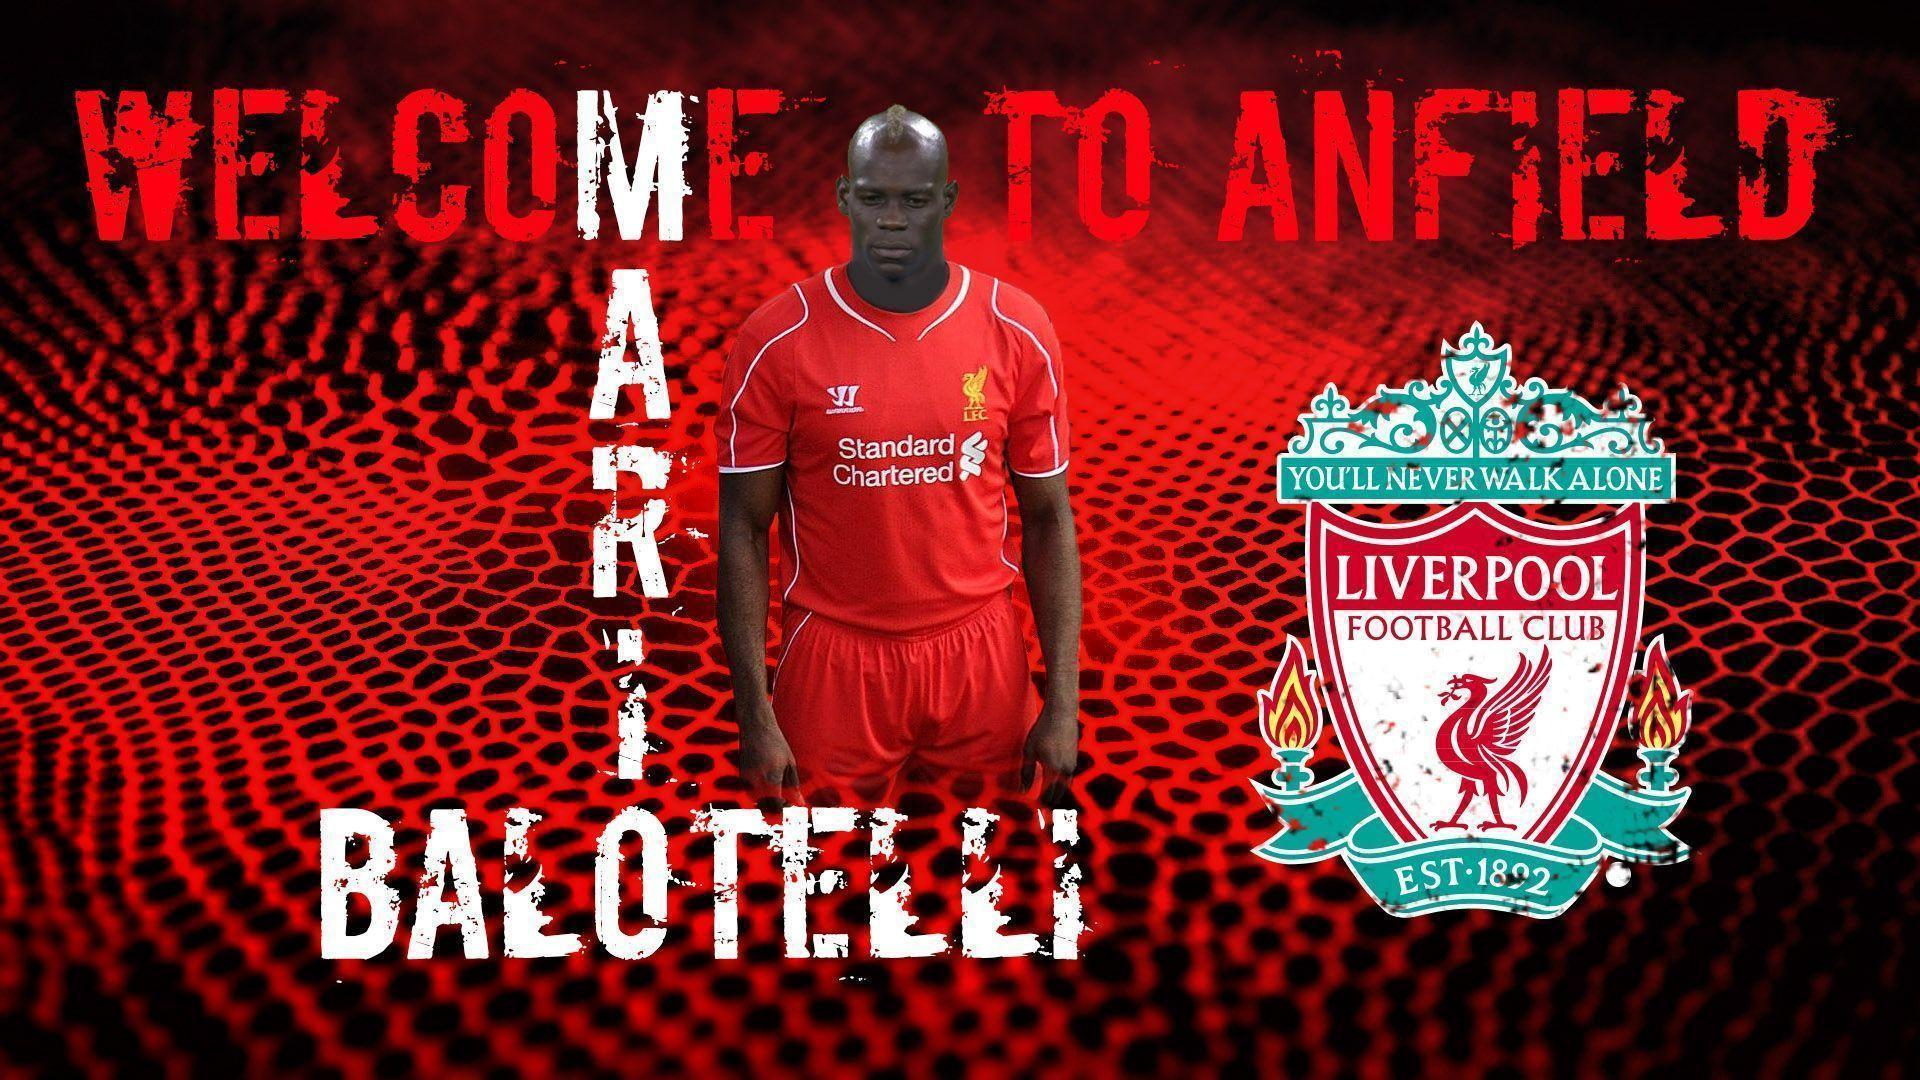 liverpool wallpapers for pc - photo #40